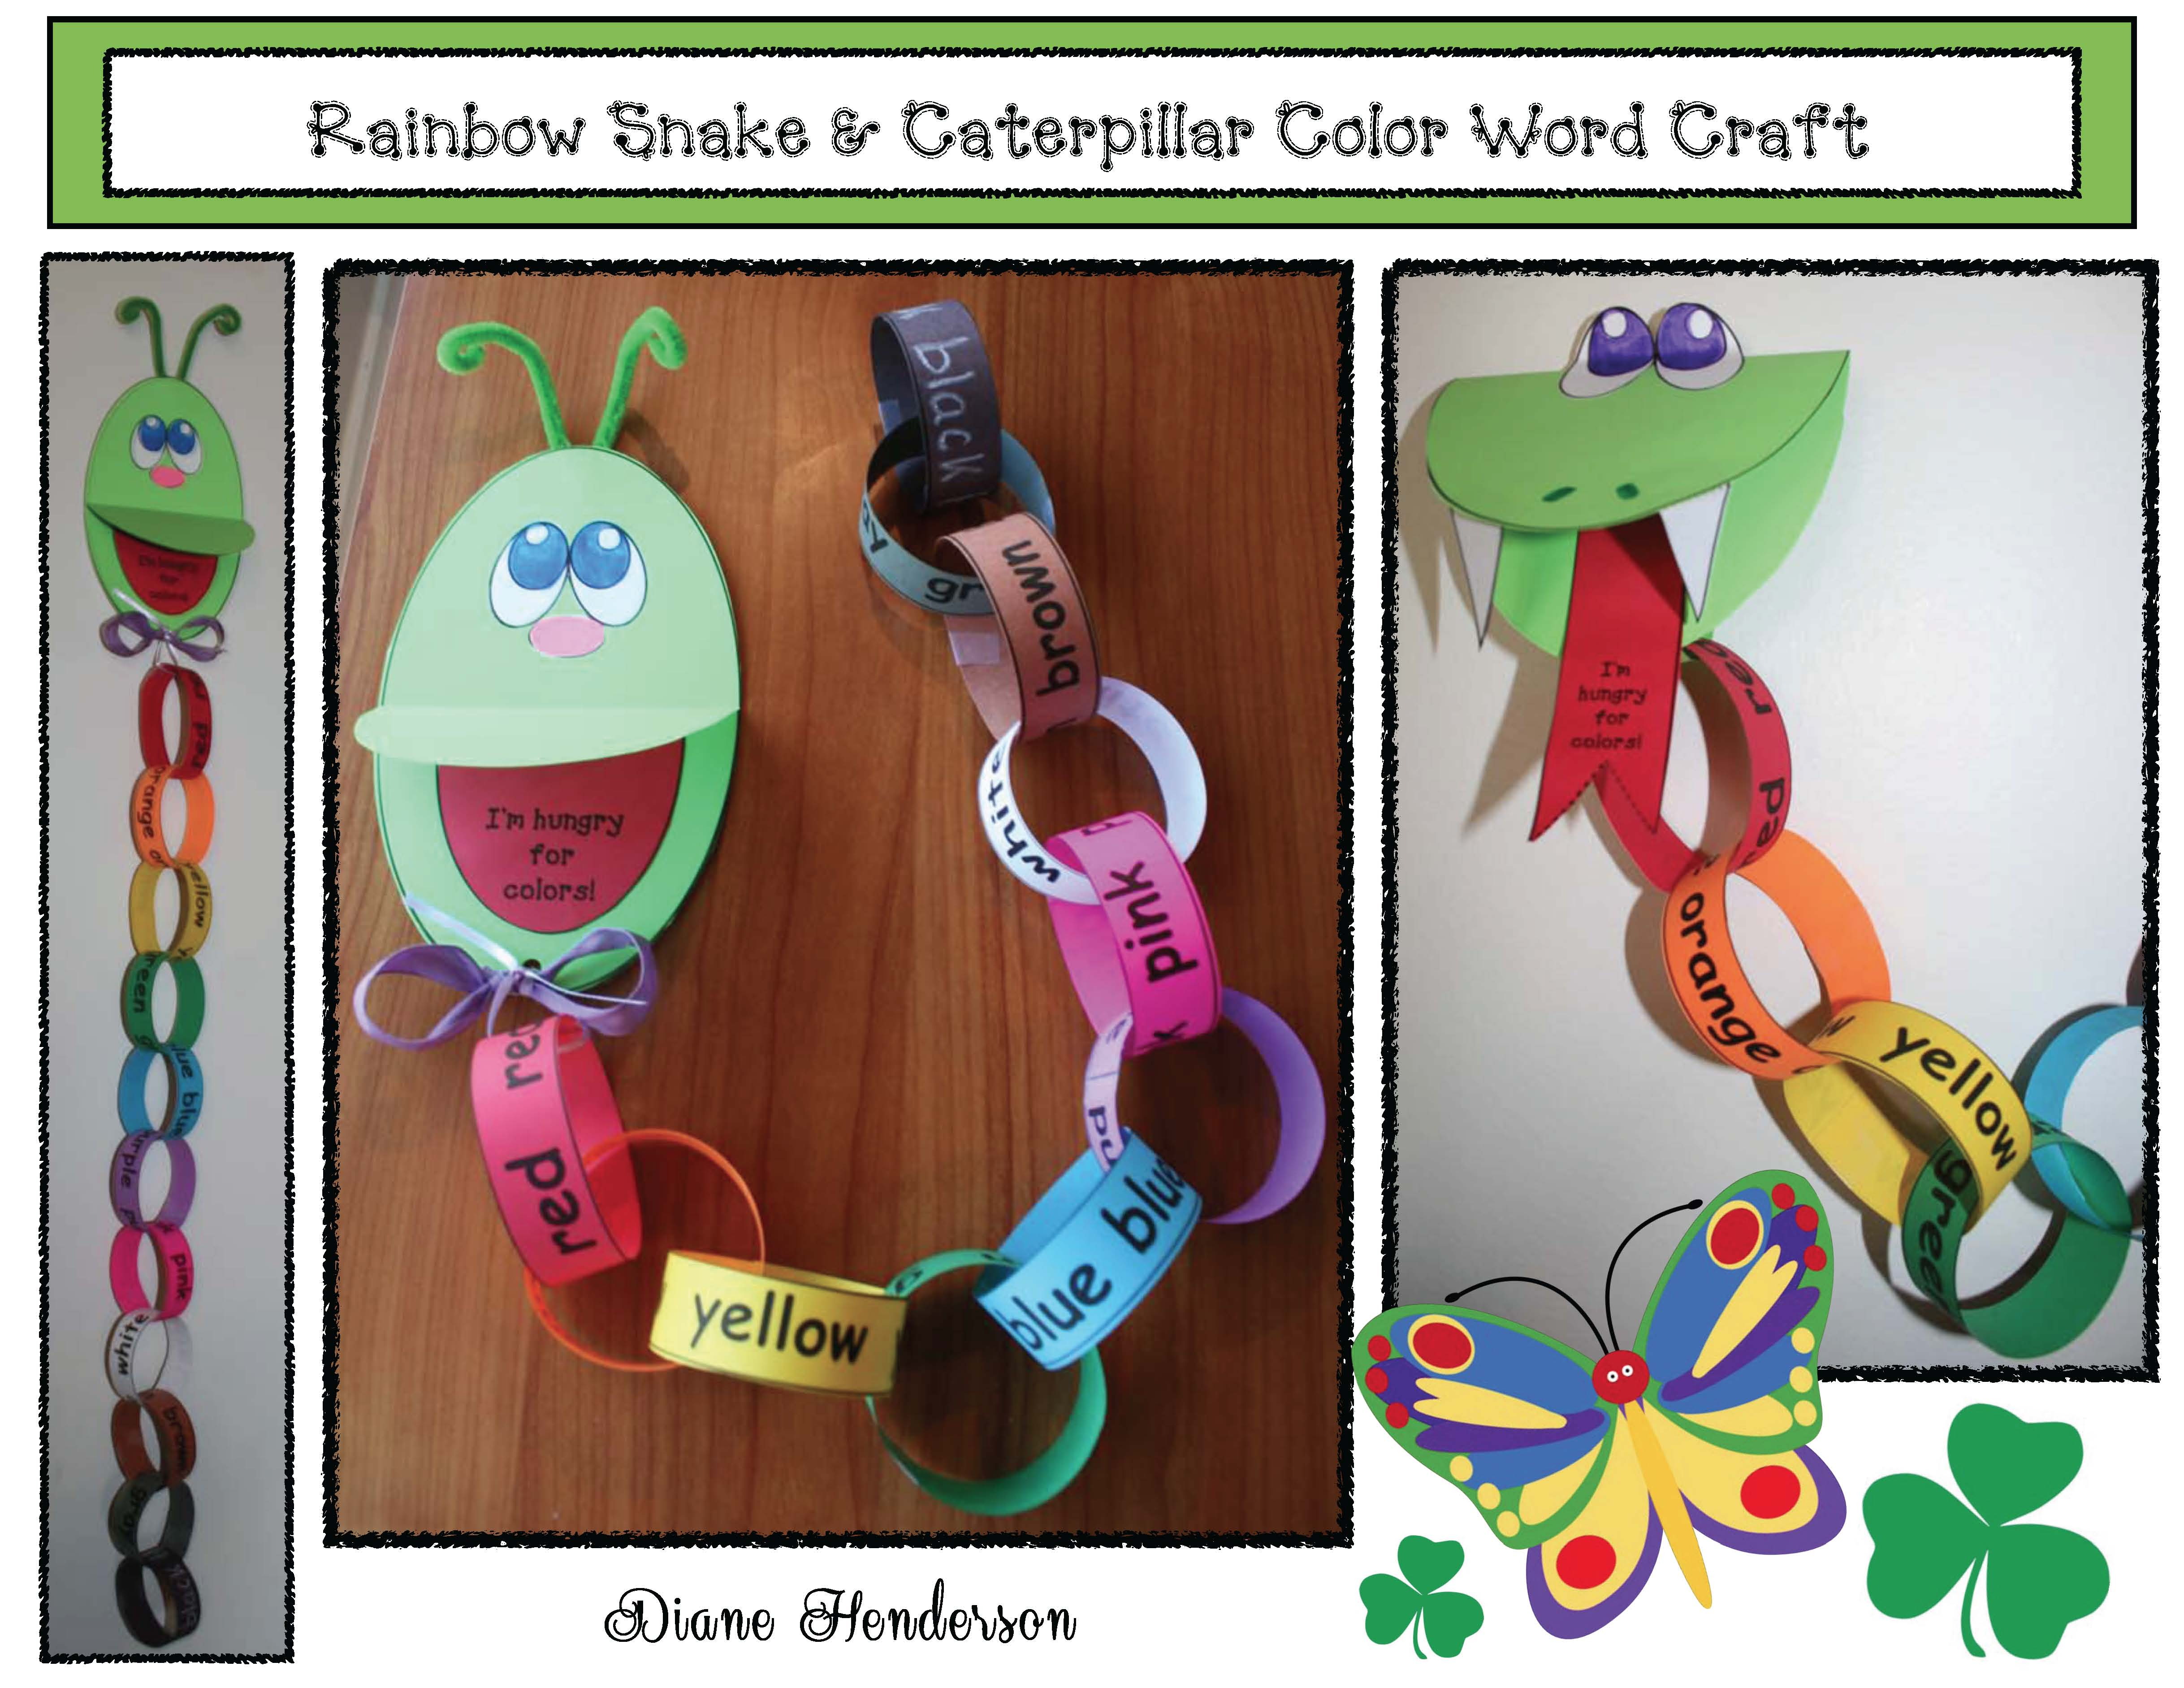 butterfly activities, butterfly crafts, butterfly puzzles, skip counting activities, color activities, the very hungry caterpillar activities, caterpillar crafts, rainbow activities, describing caterpillars and butterflies